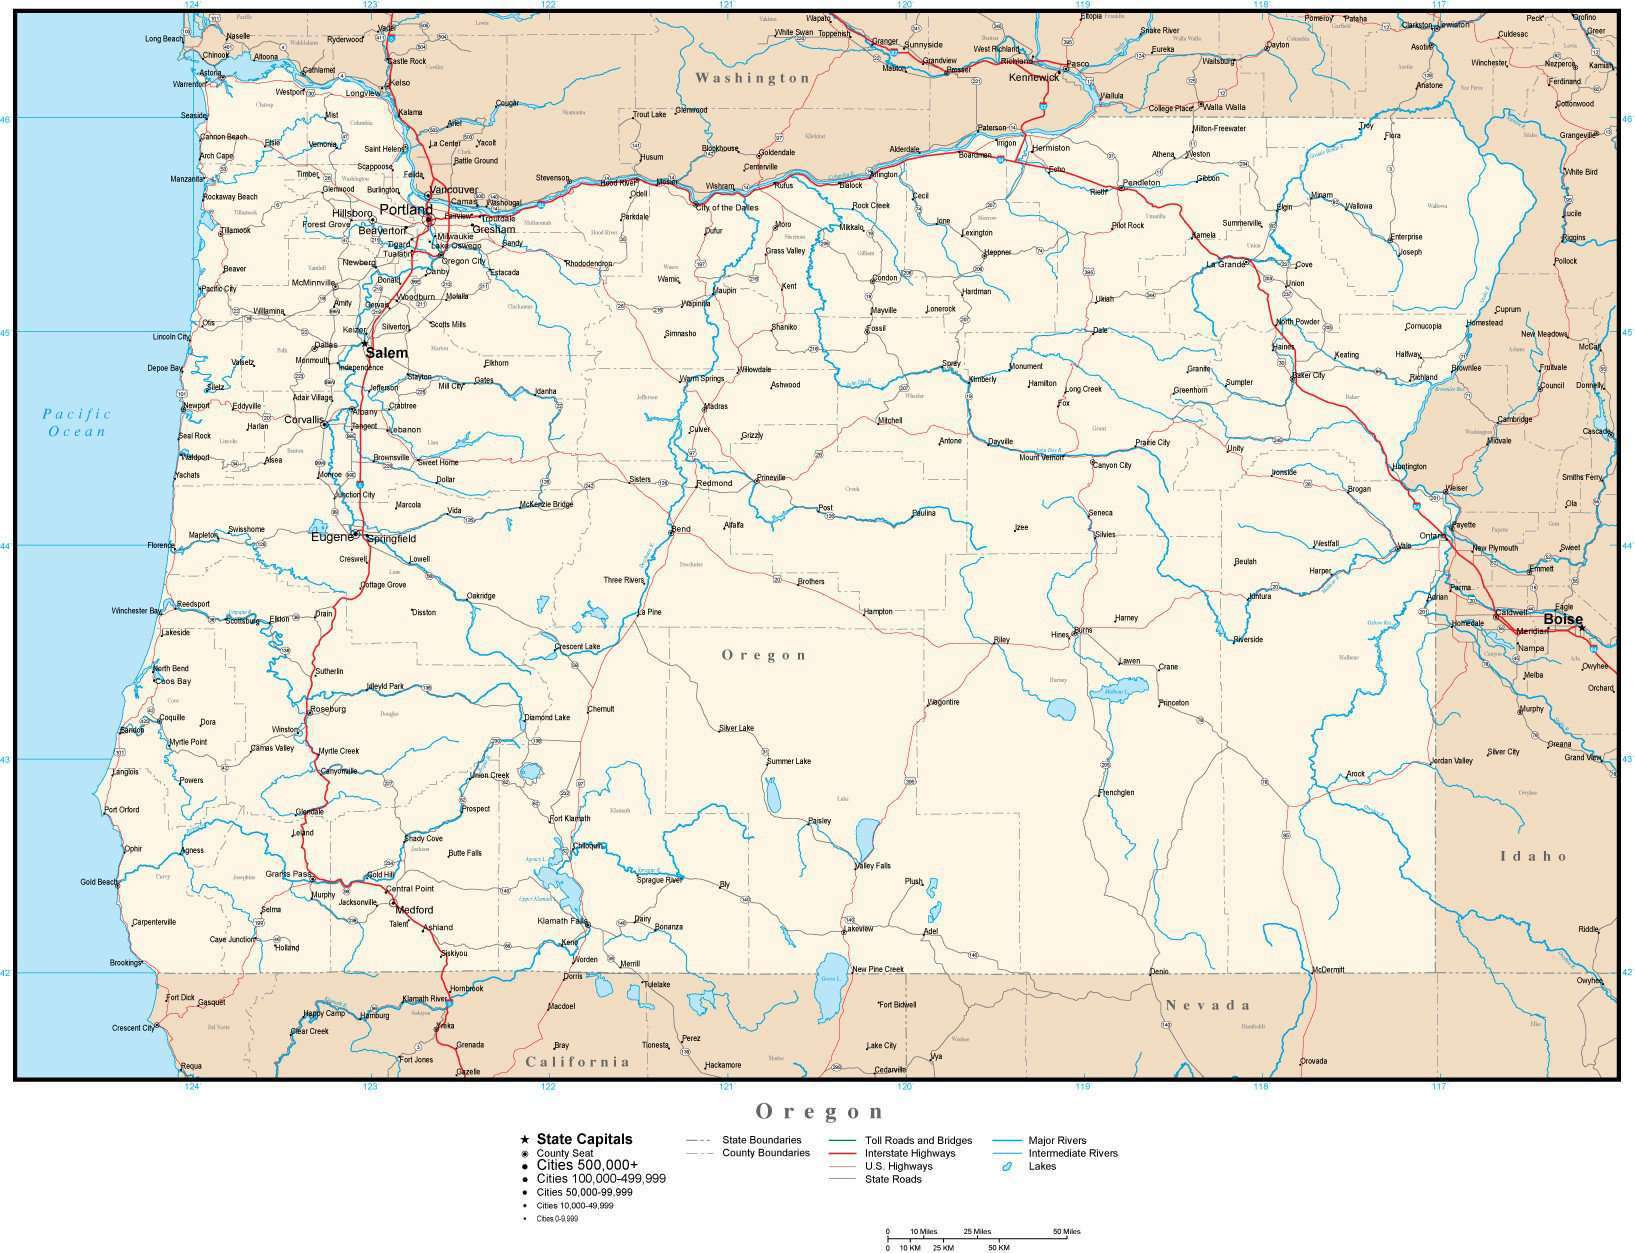 Oregon map in Adobe Illustrator vector format – Map Resources